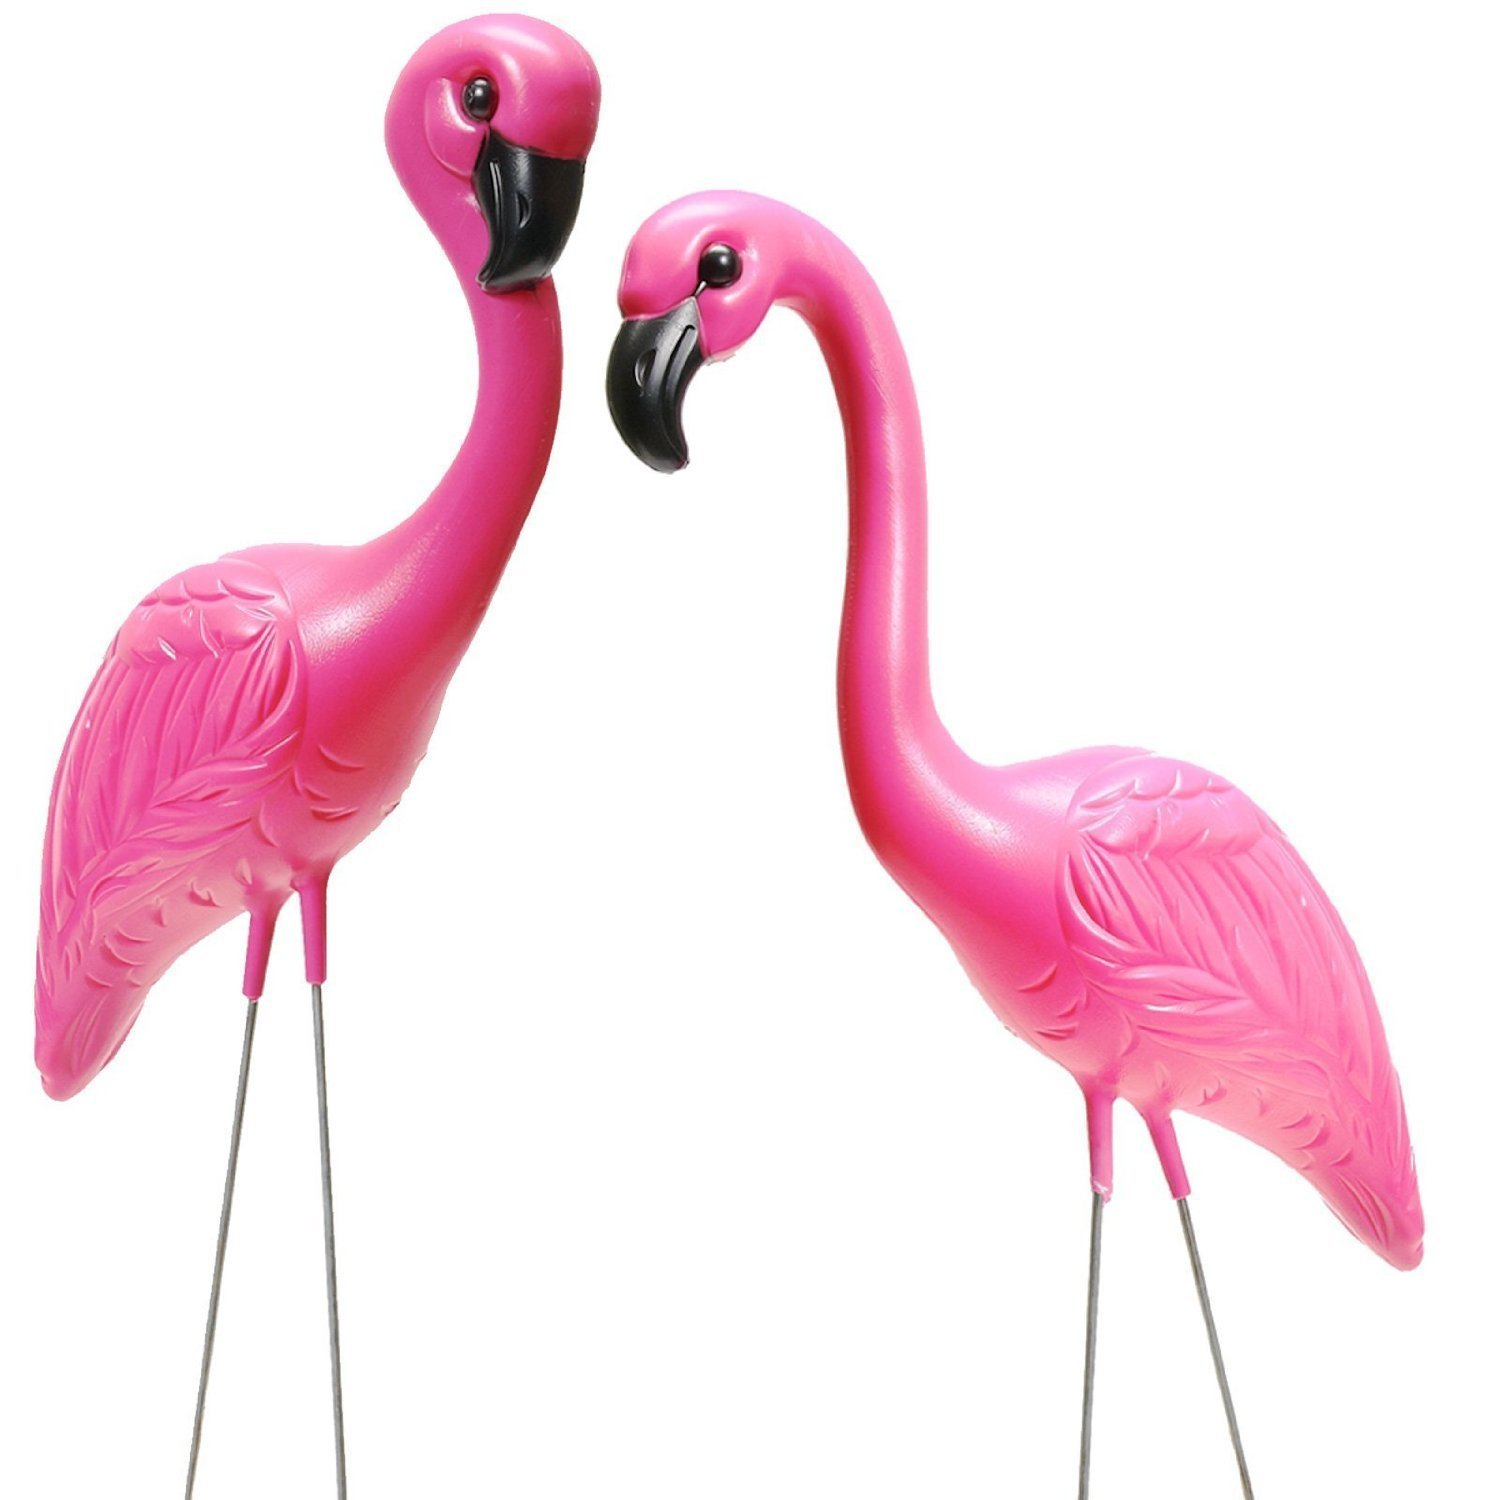 Flamingo garden ornament - Amazon Com Fun Express Pink Flamingo Novelty Yard Lawn Art Garden Ornaments 1 Pack Of 2 Outdoor Statues Patio Lawn Garden